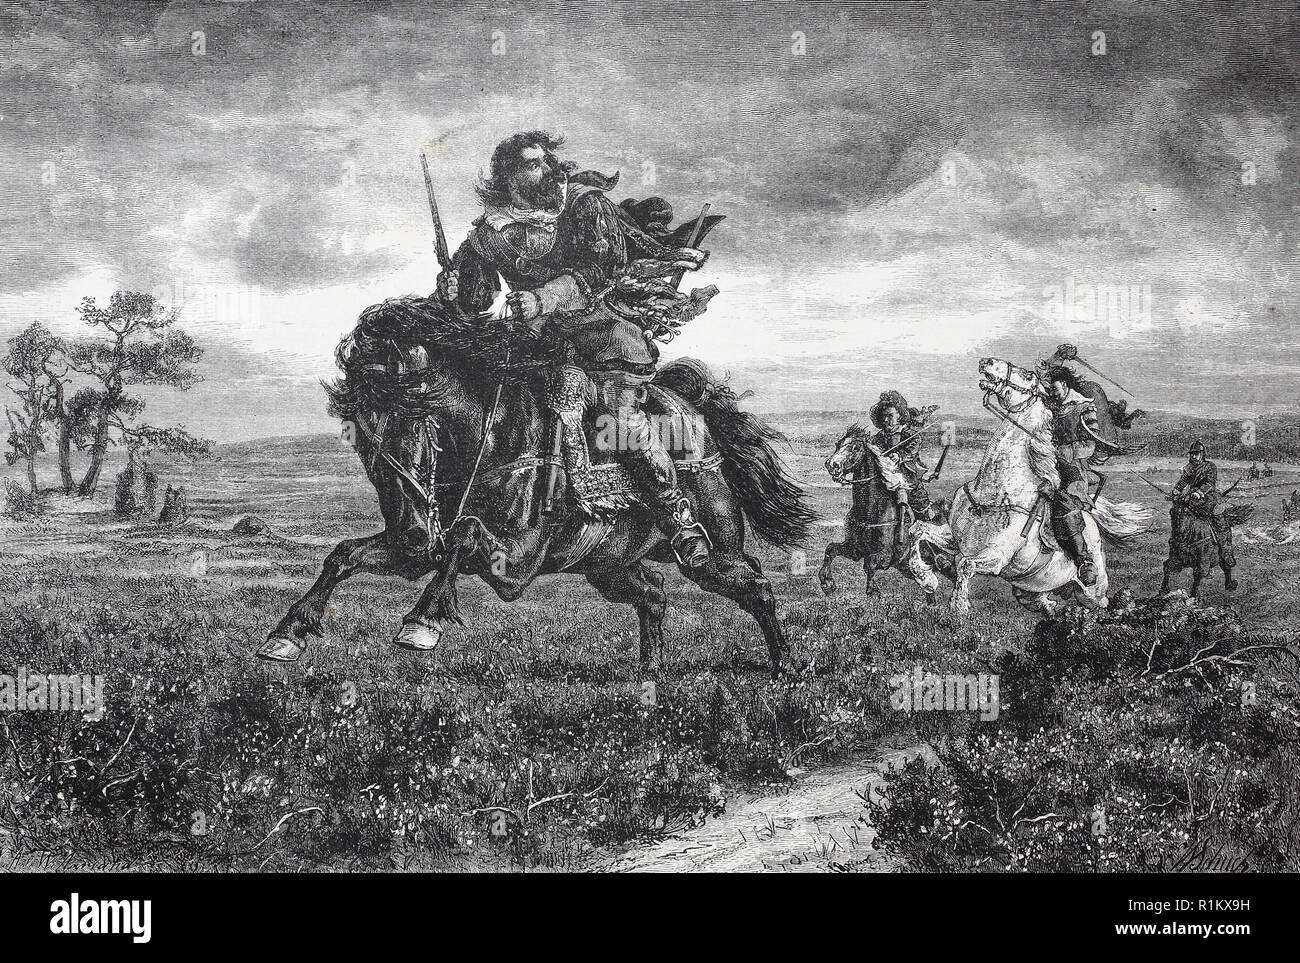 Digital improved reproduction, on life and death. Musketeers hunt a fleeting rider - Stock Image